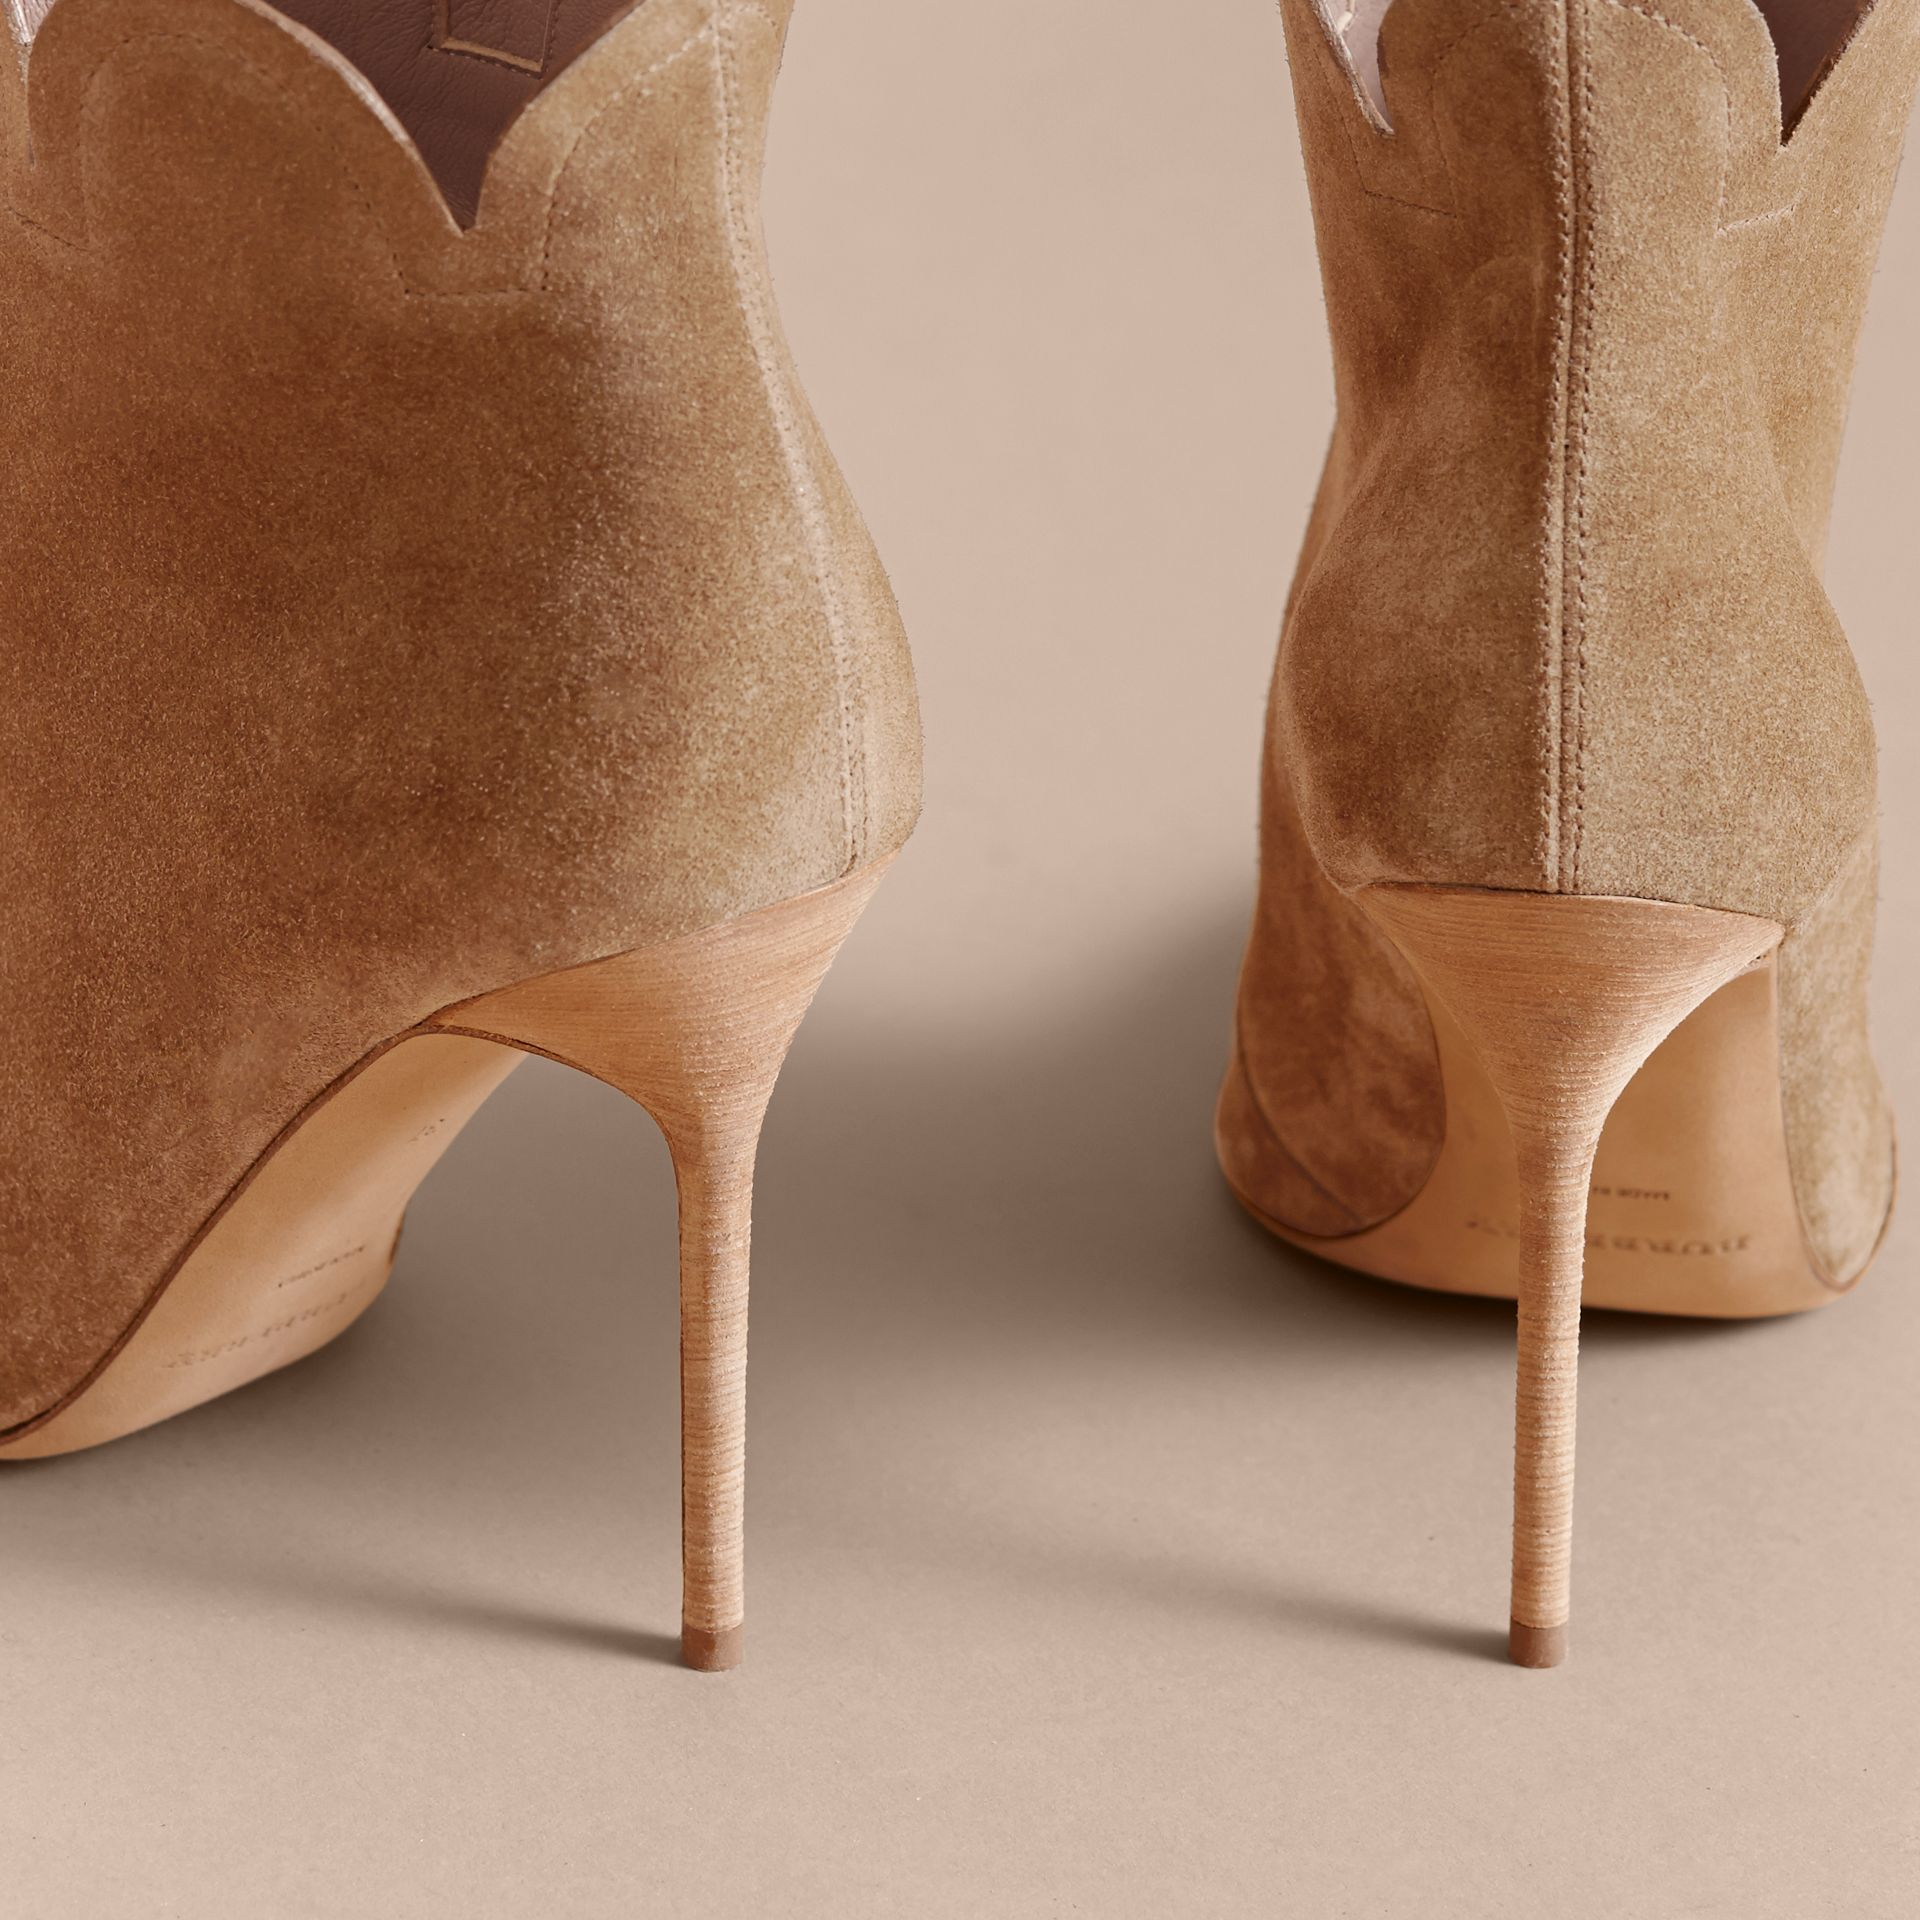 Scalloped Suede Ankle Boots in Sandstone - Women | Burberry United States - gallery image 4